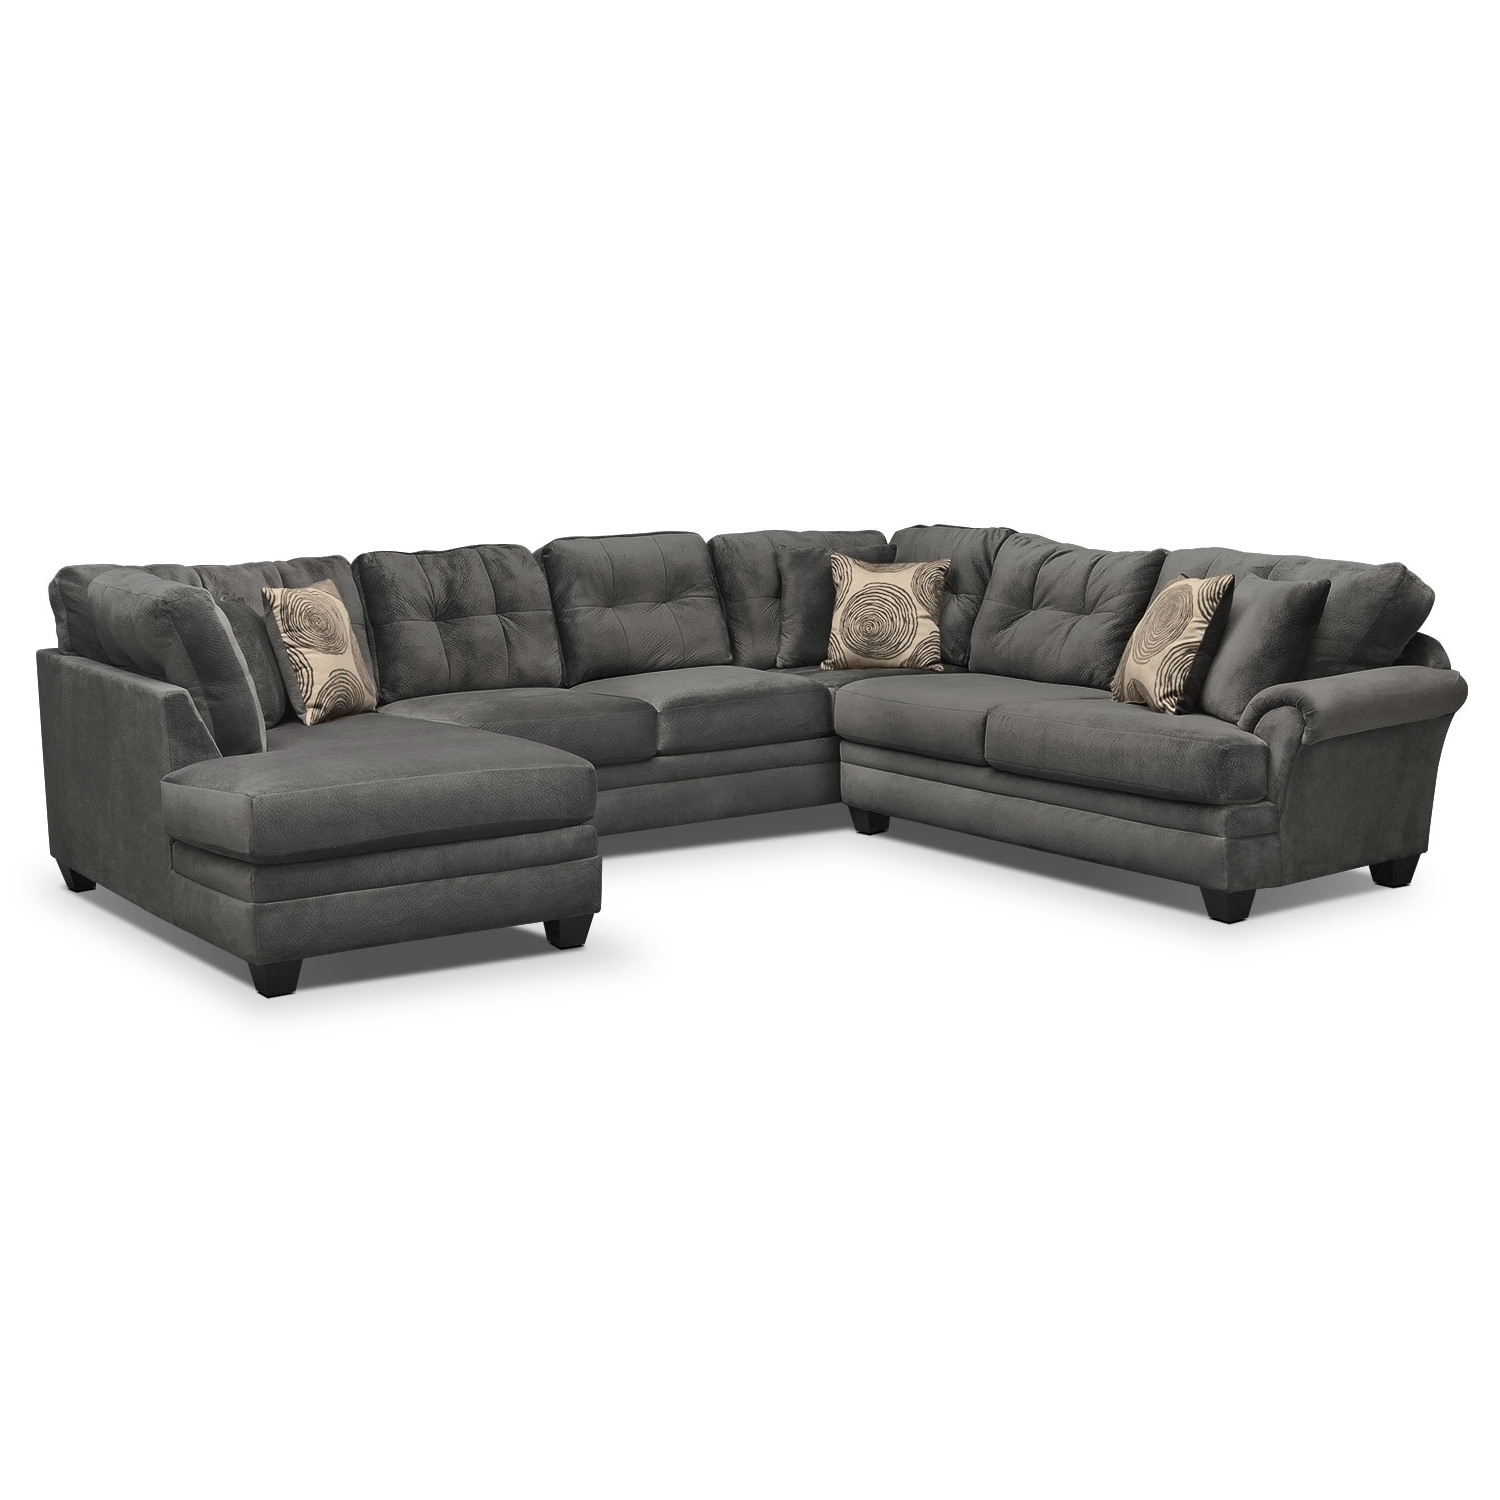 Couch And Sofa Set With Best And Newest Sectional Sofas At Buffalo Ny (View 5 of 20)